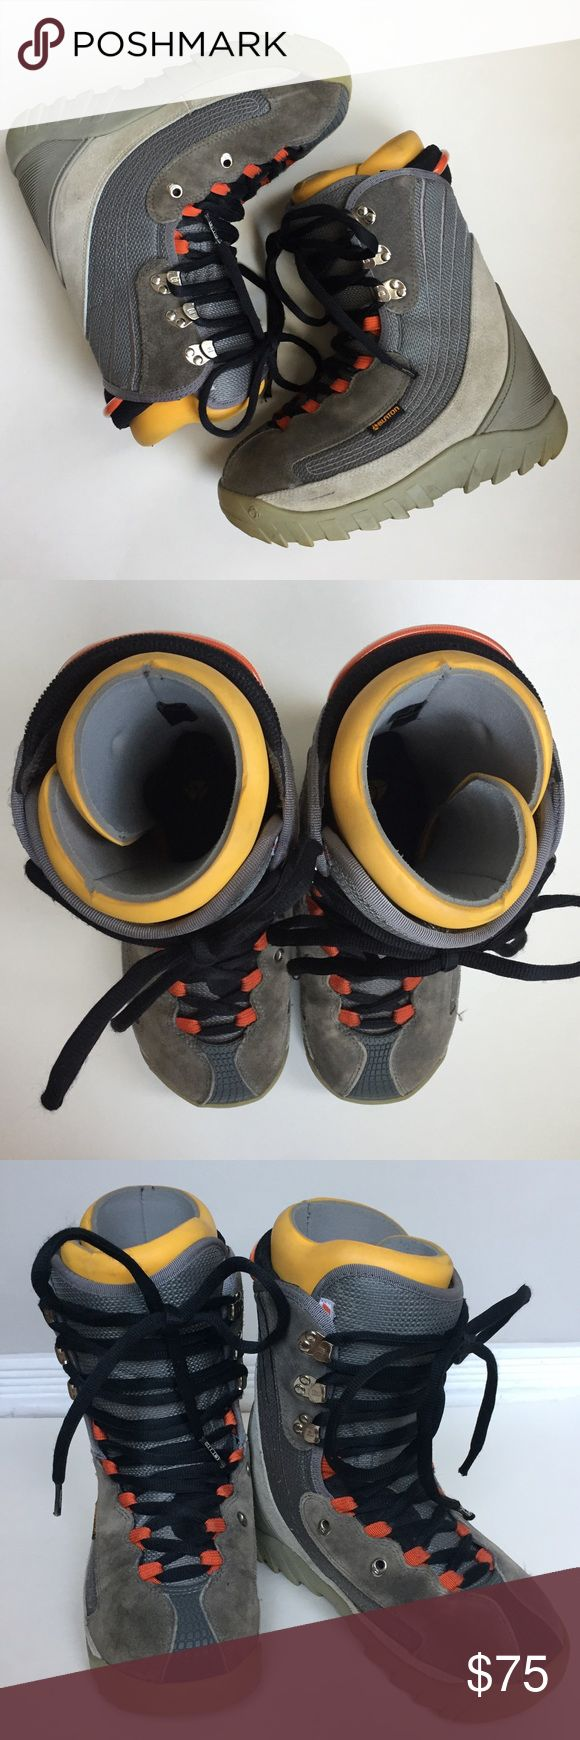 Burton moto snowboarding boots men's sz 7. EUC! Burton moto snowboarding boots. men's size: 7. Excellent preowned condition. Tan/gray suede with yellow and orange accents. Very minimal wear. Men's size but can be worn by a women or girl because they are a neutral style. Burton Shoes Boots